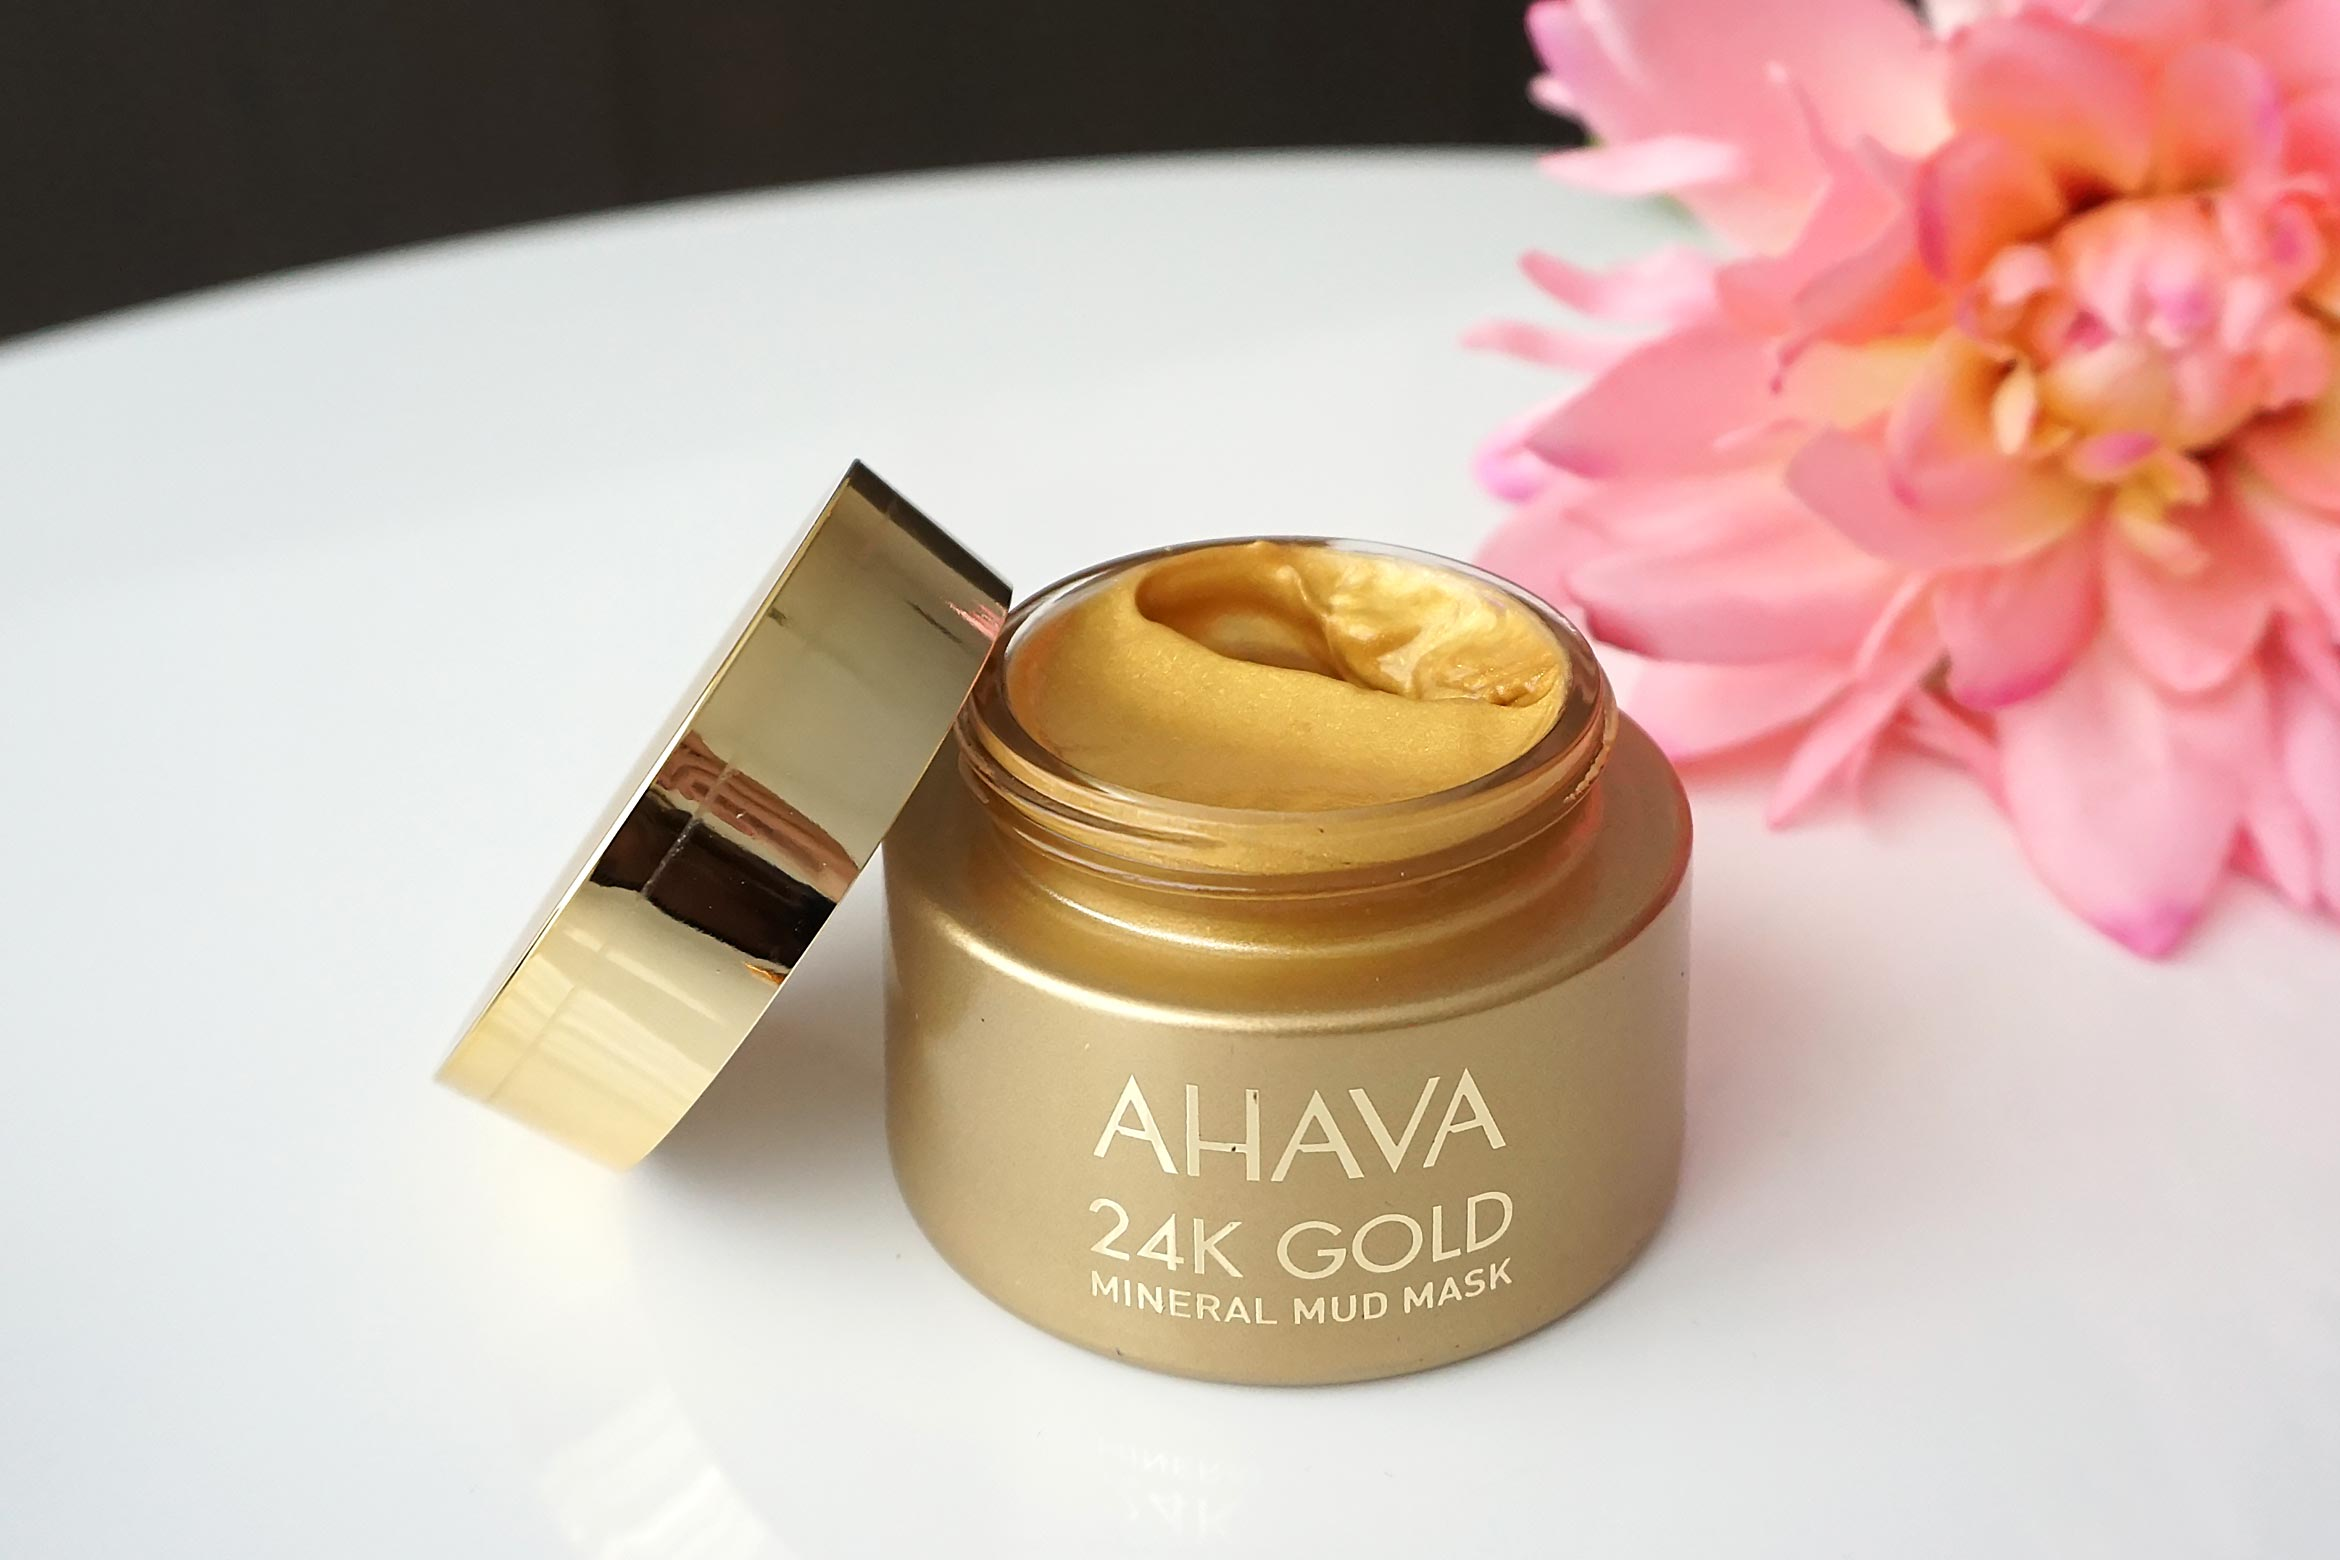 Ahava-24k-gold-mineral-mud-mask-review-1